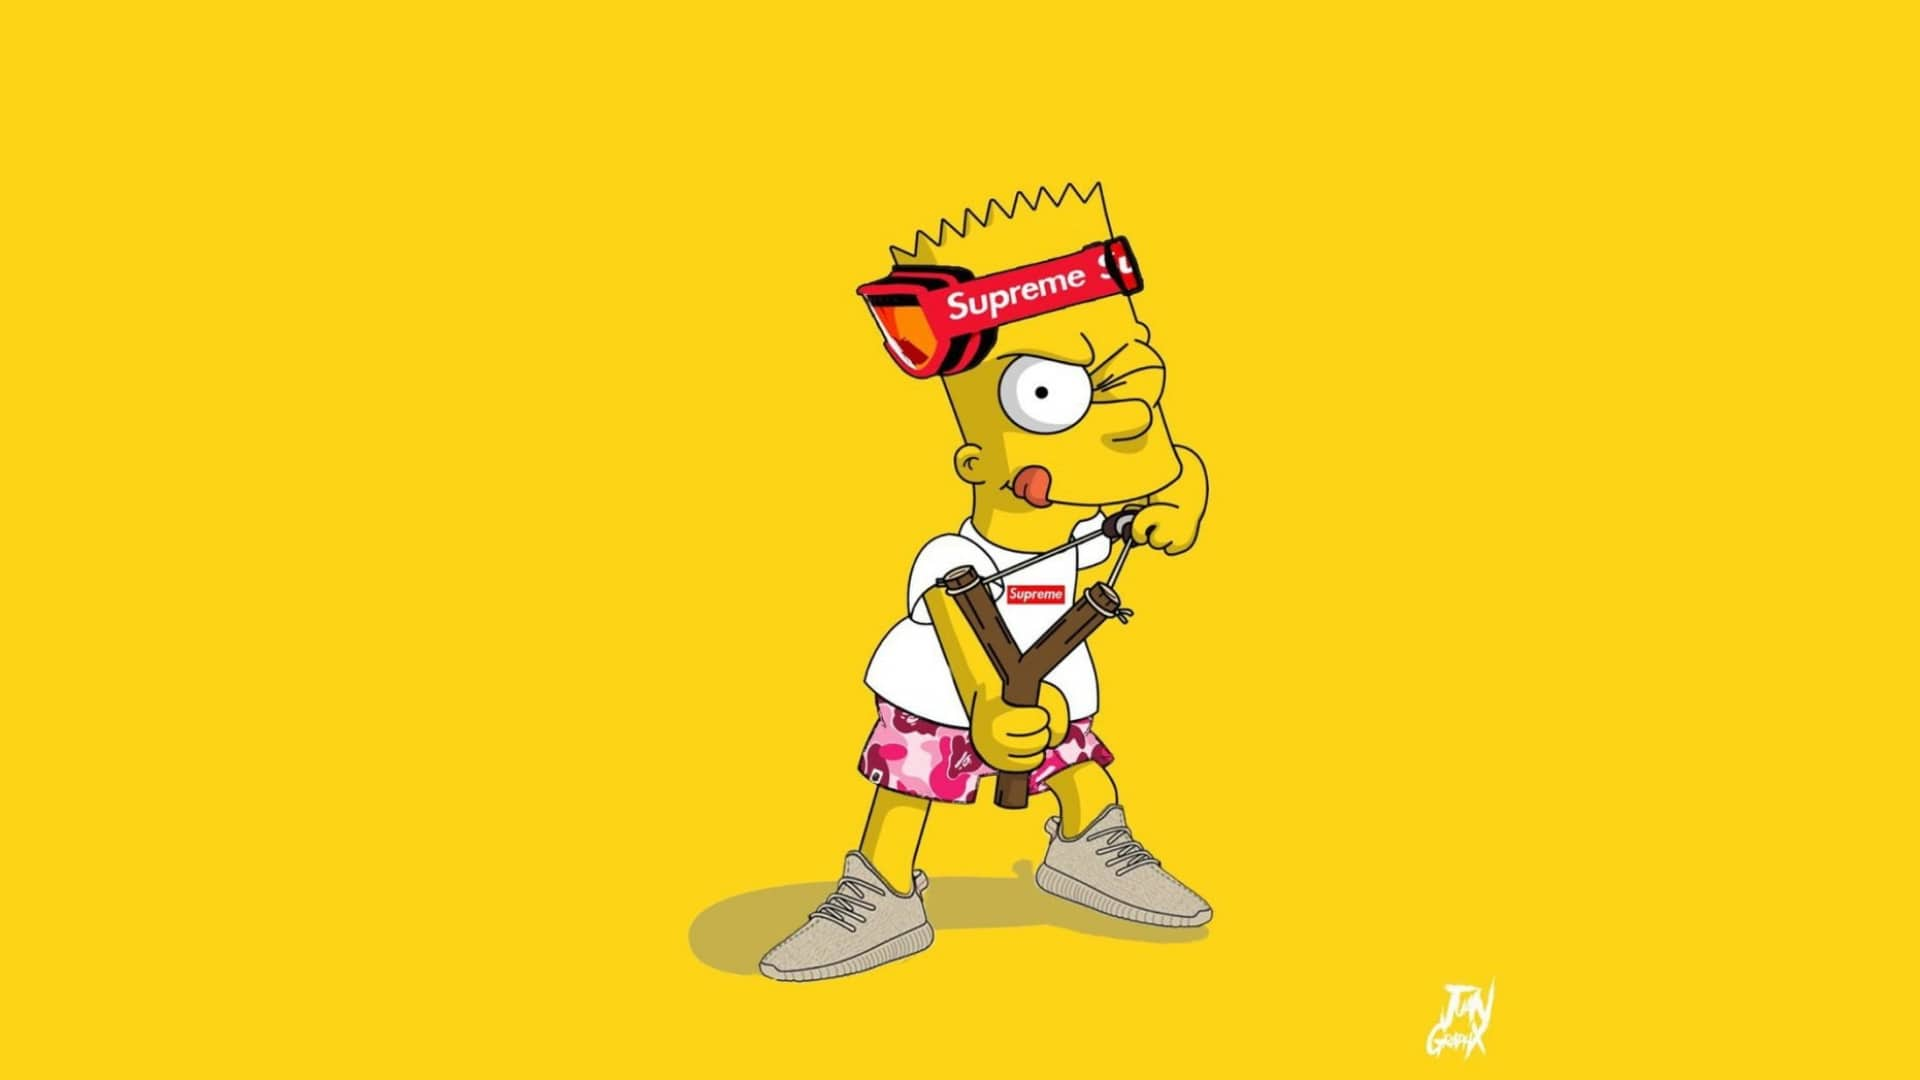 Angry Bart Simpson Wallpaper Kolpaper Awesome Free Hd Wallpapers